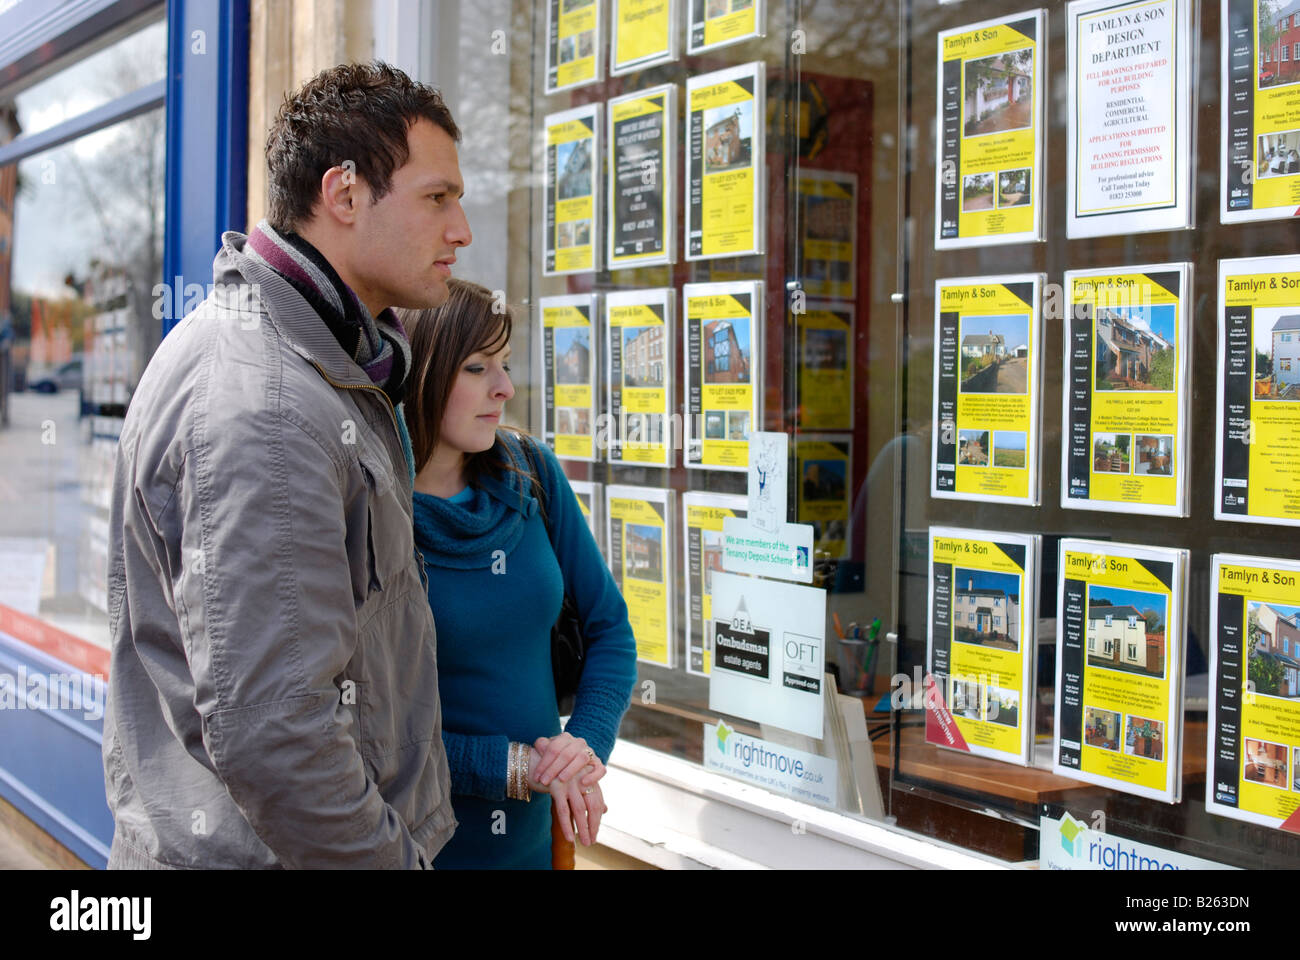 A young couple aspiring to buy their first home browse the listings in an estate agency window Stock Photo